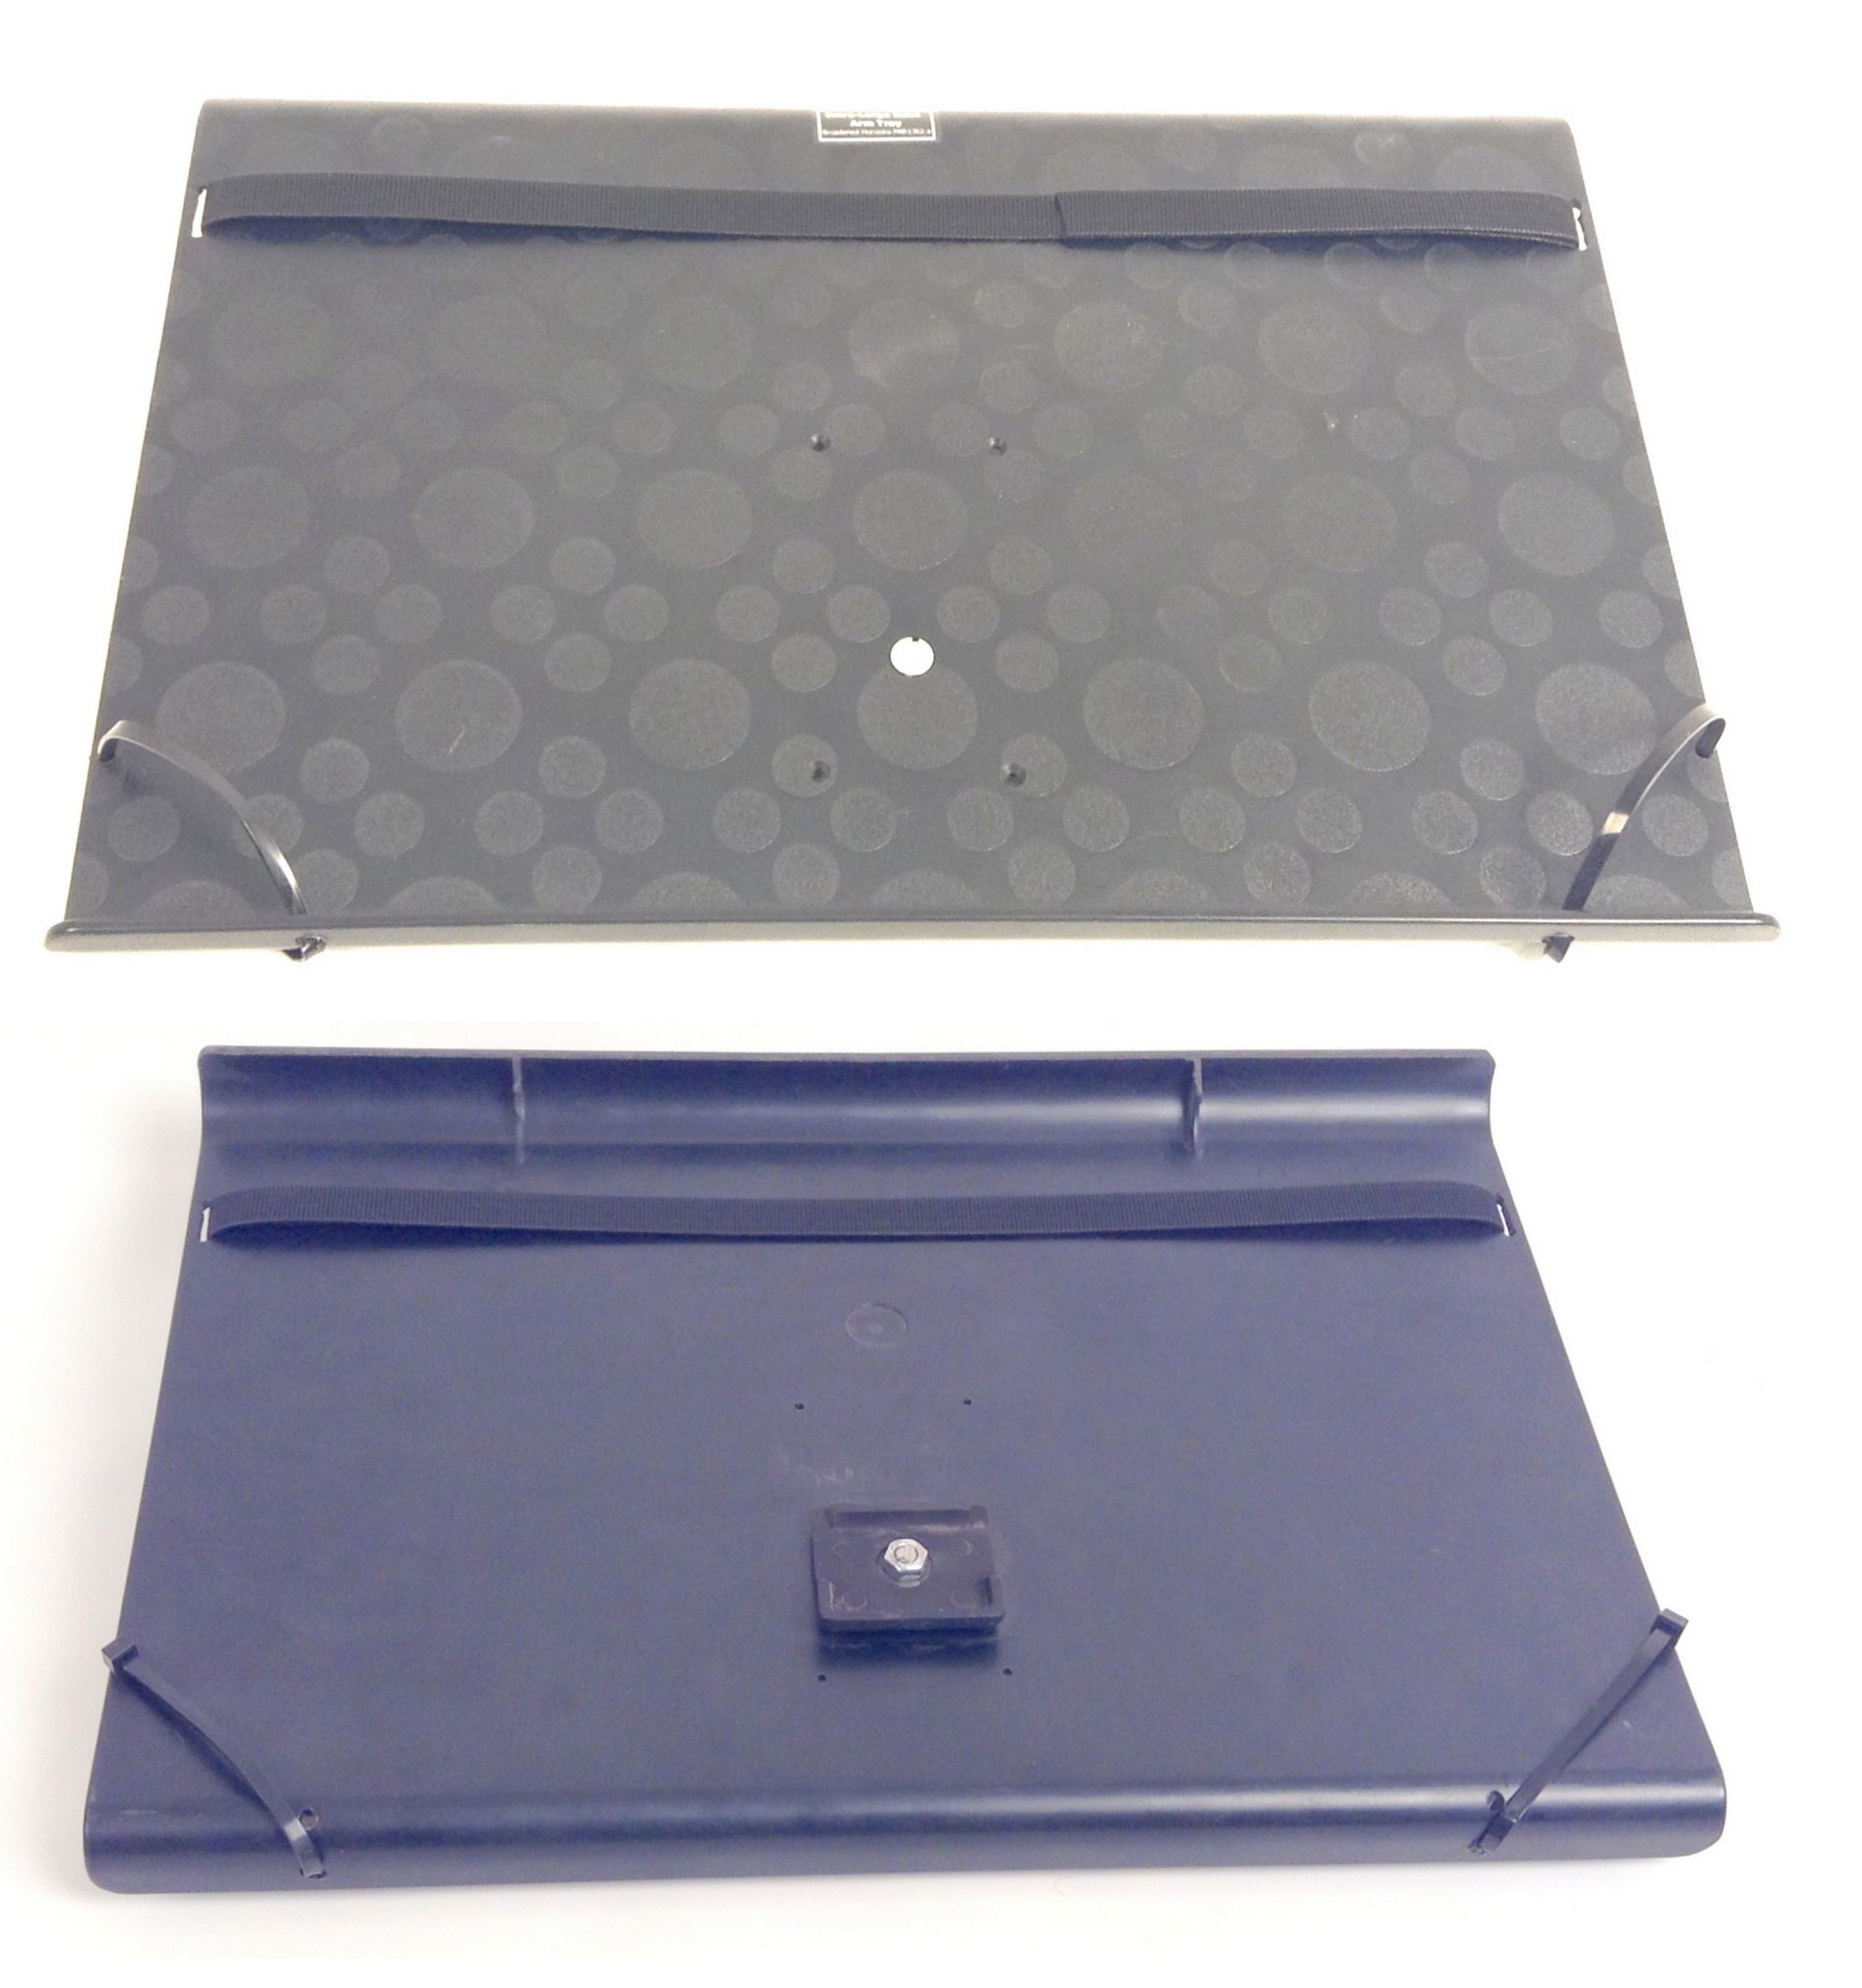 Robo Arm Extra-Large Black Tray for 17'' Laptop, Eating, Newspaper - Broadened Horizons Direct